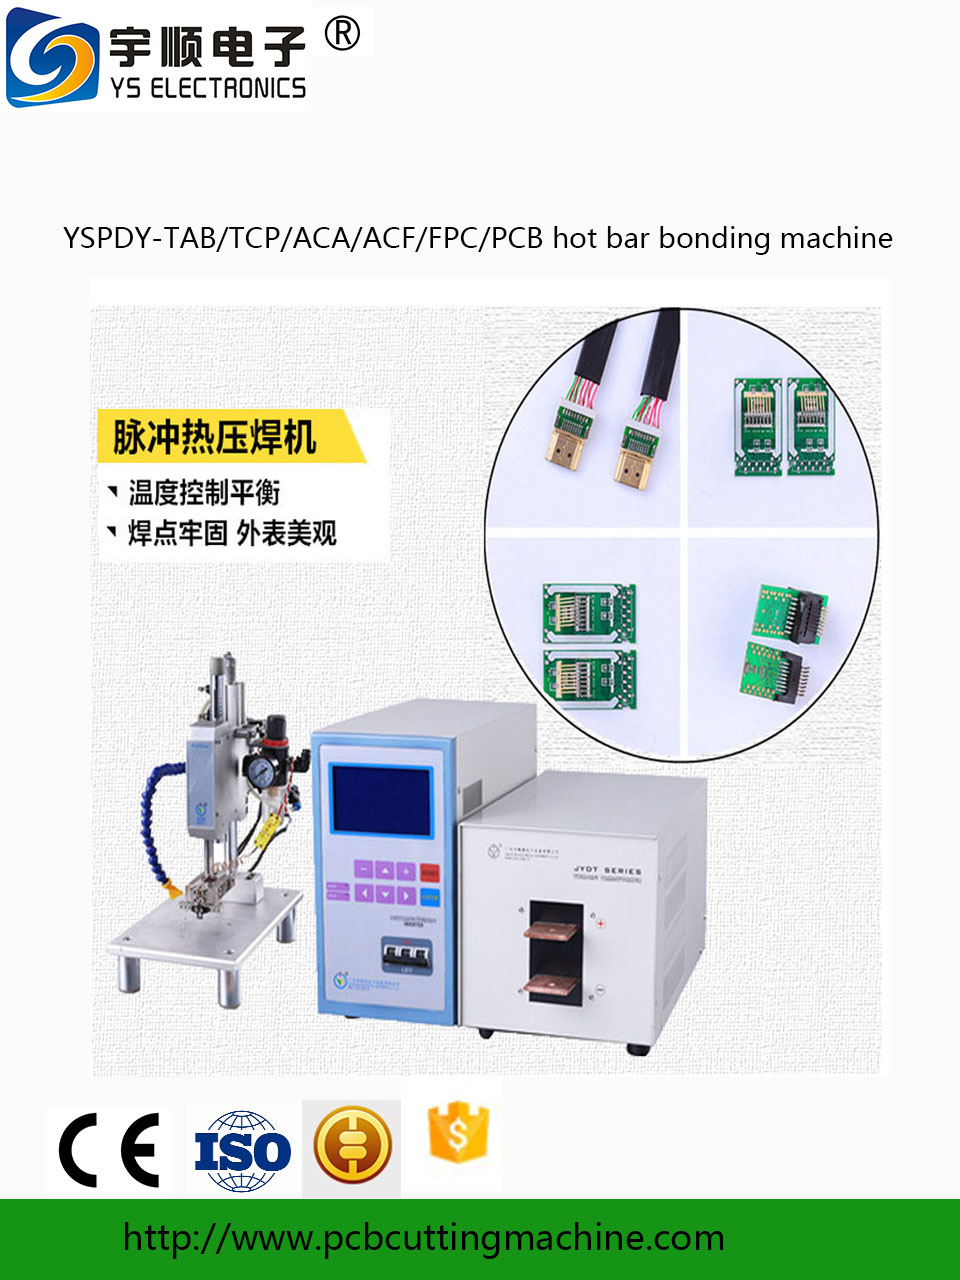 Lcd Display Hot Bar Soldering Machine With Optional Ccd System - Lcd Display Hot Bar Soldering Machine With Optional Ccd System Manufacturers, Suppliers and Exporters on pcbcuttingmachine.com Electronics Production Machinery